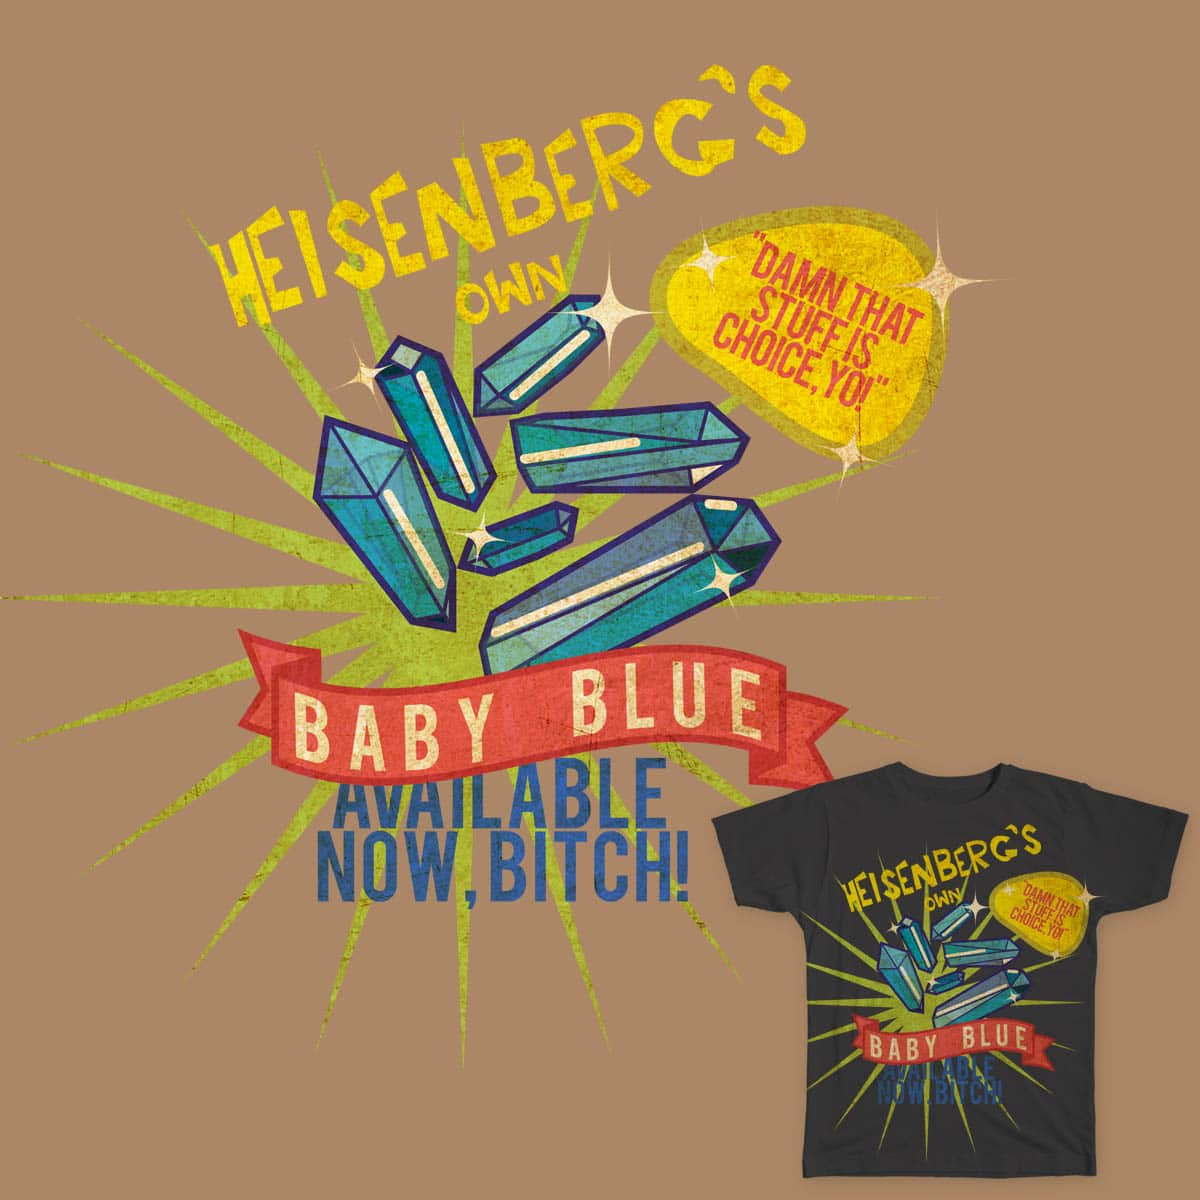 Baby Blue by Brthdaygrl on Threadless